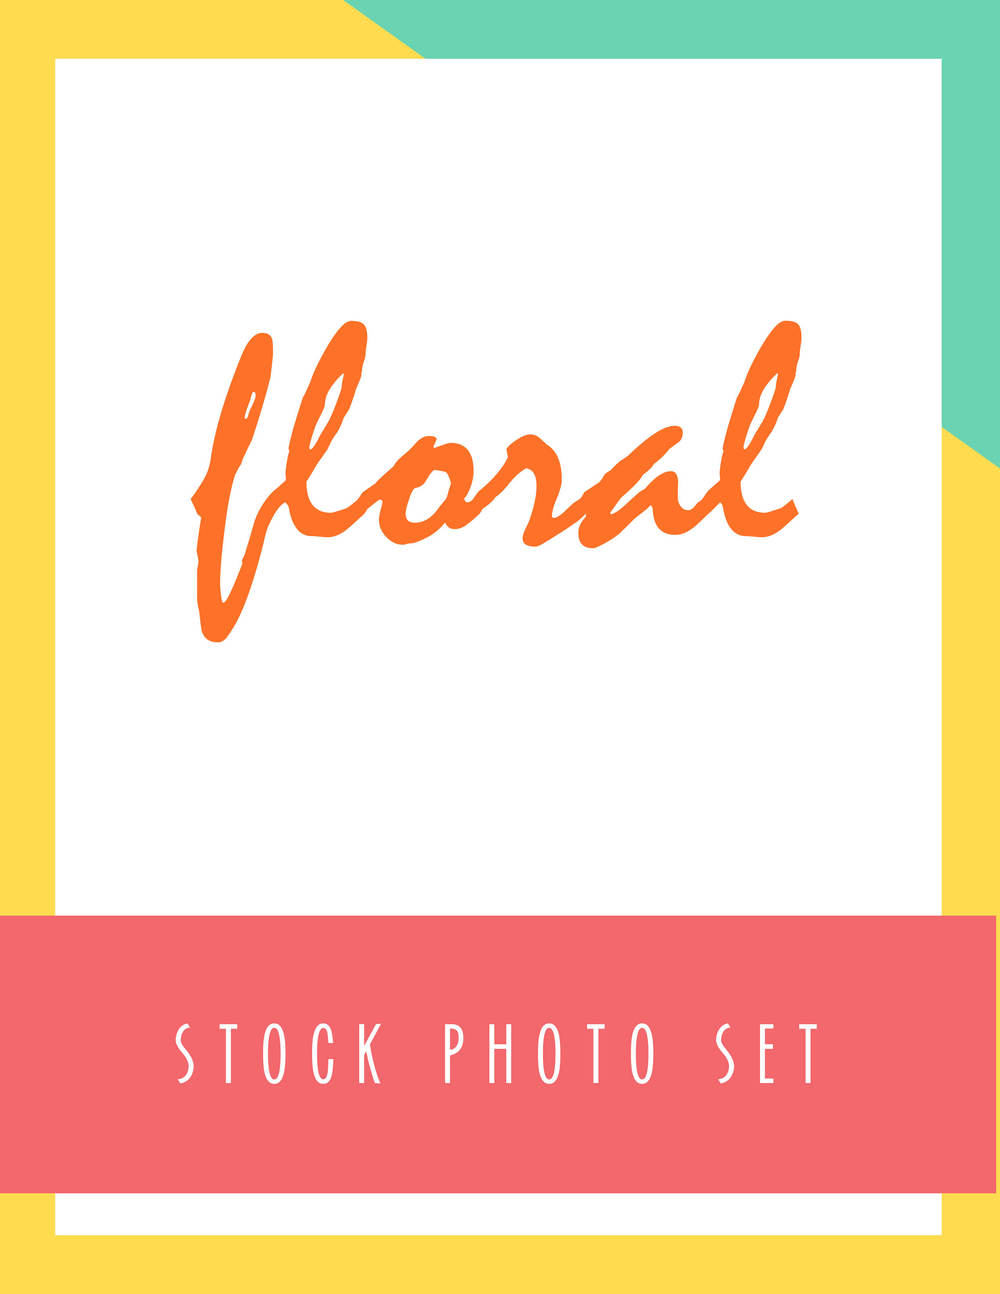 Bold & Pop Floral Stock Photo Set